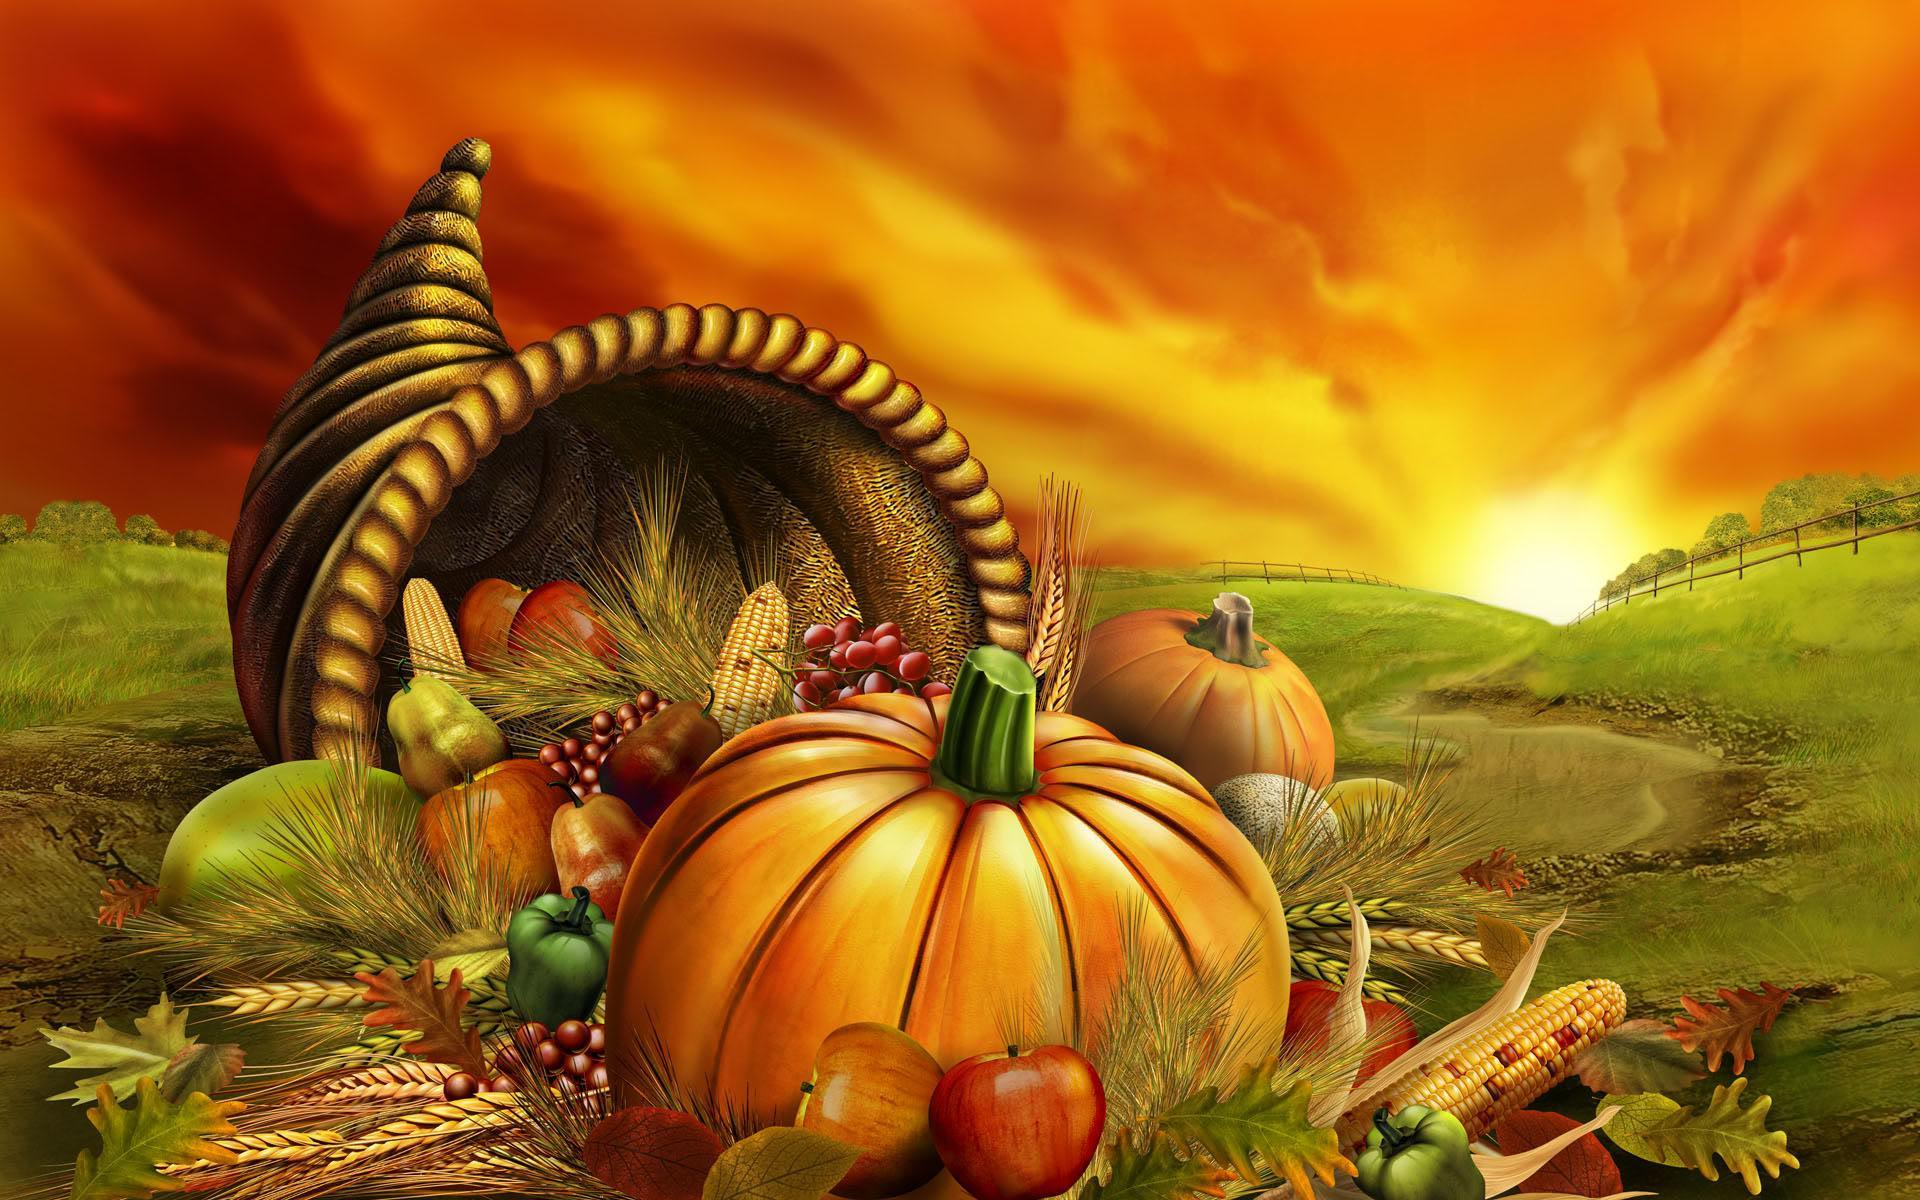 Free Download}* Happy Thanksgiving Images Wallpaper Pictures 1920x1200